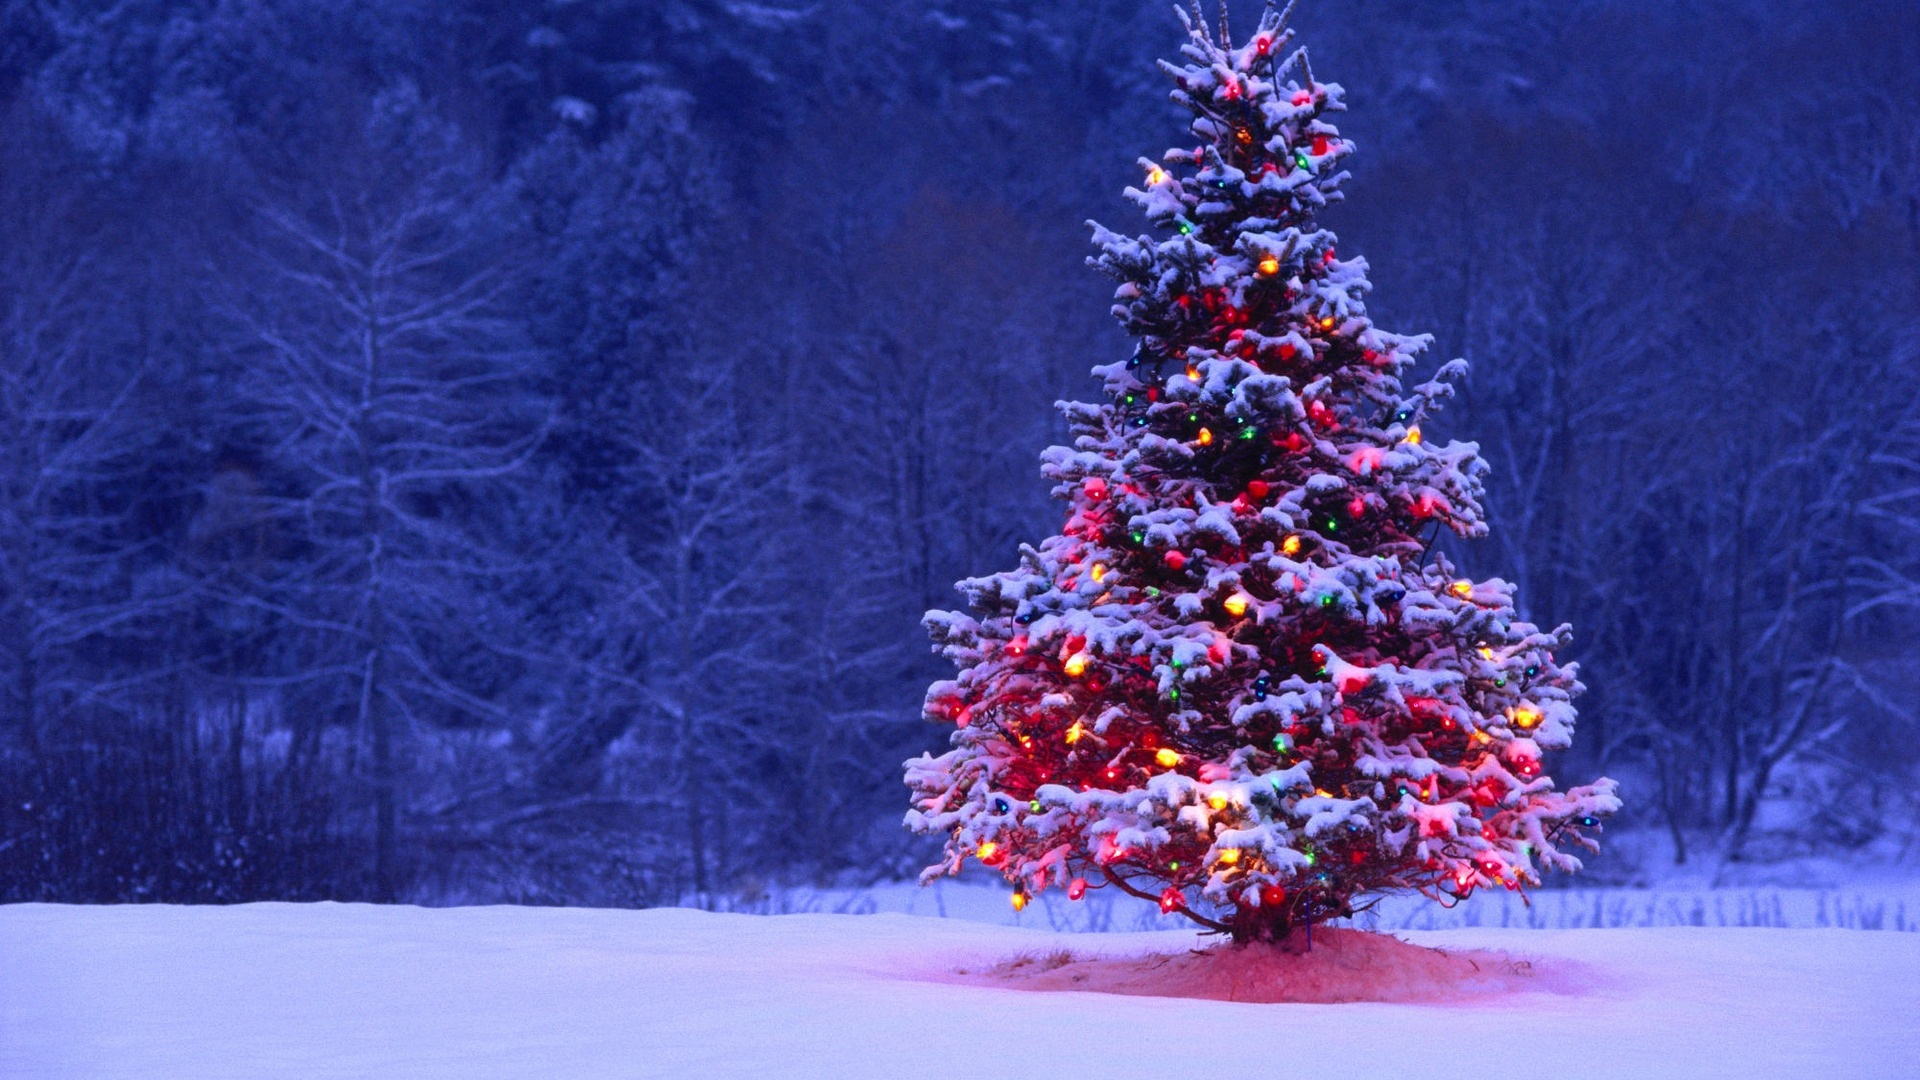 Images Of Christmas Tree with Snow and Lights 279.49 Kb